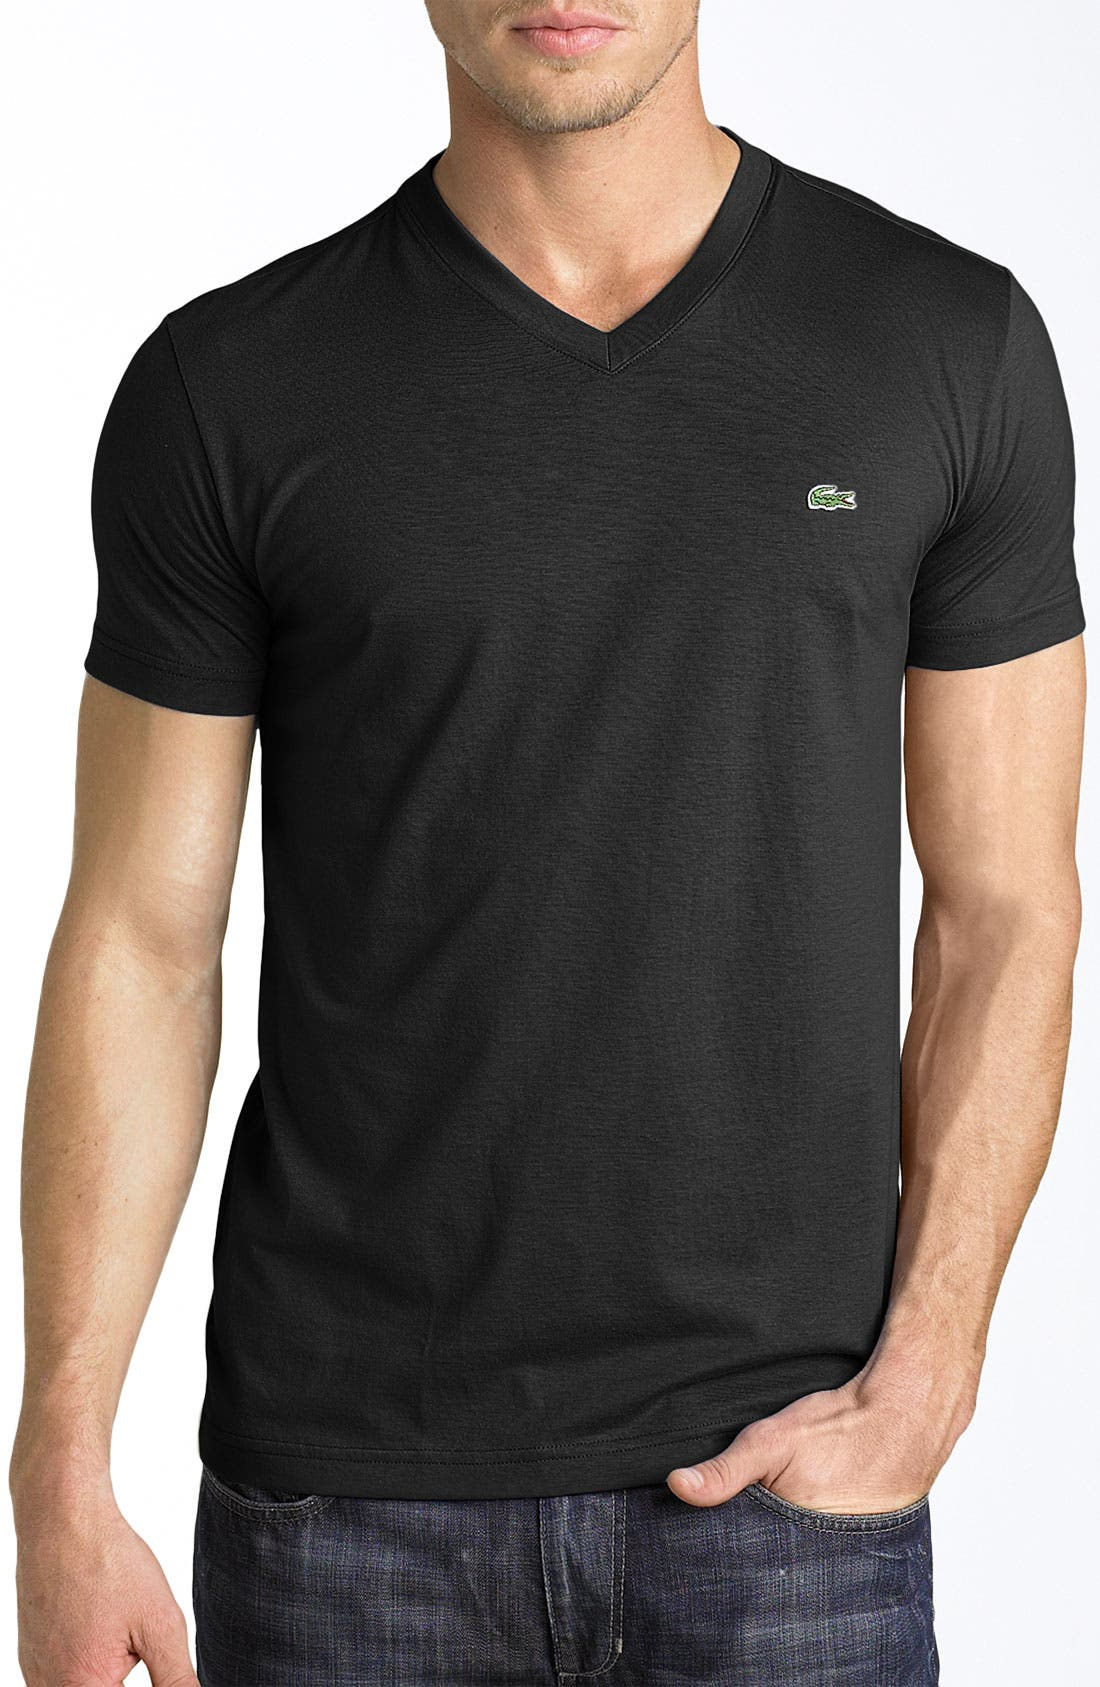 Main Image - Lacoste V-Neck Cotton T-Shirt (Tall)